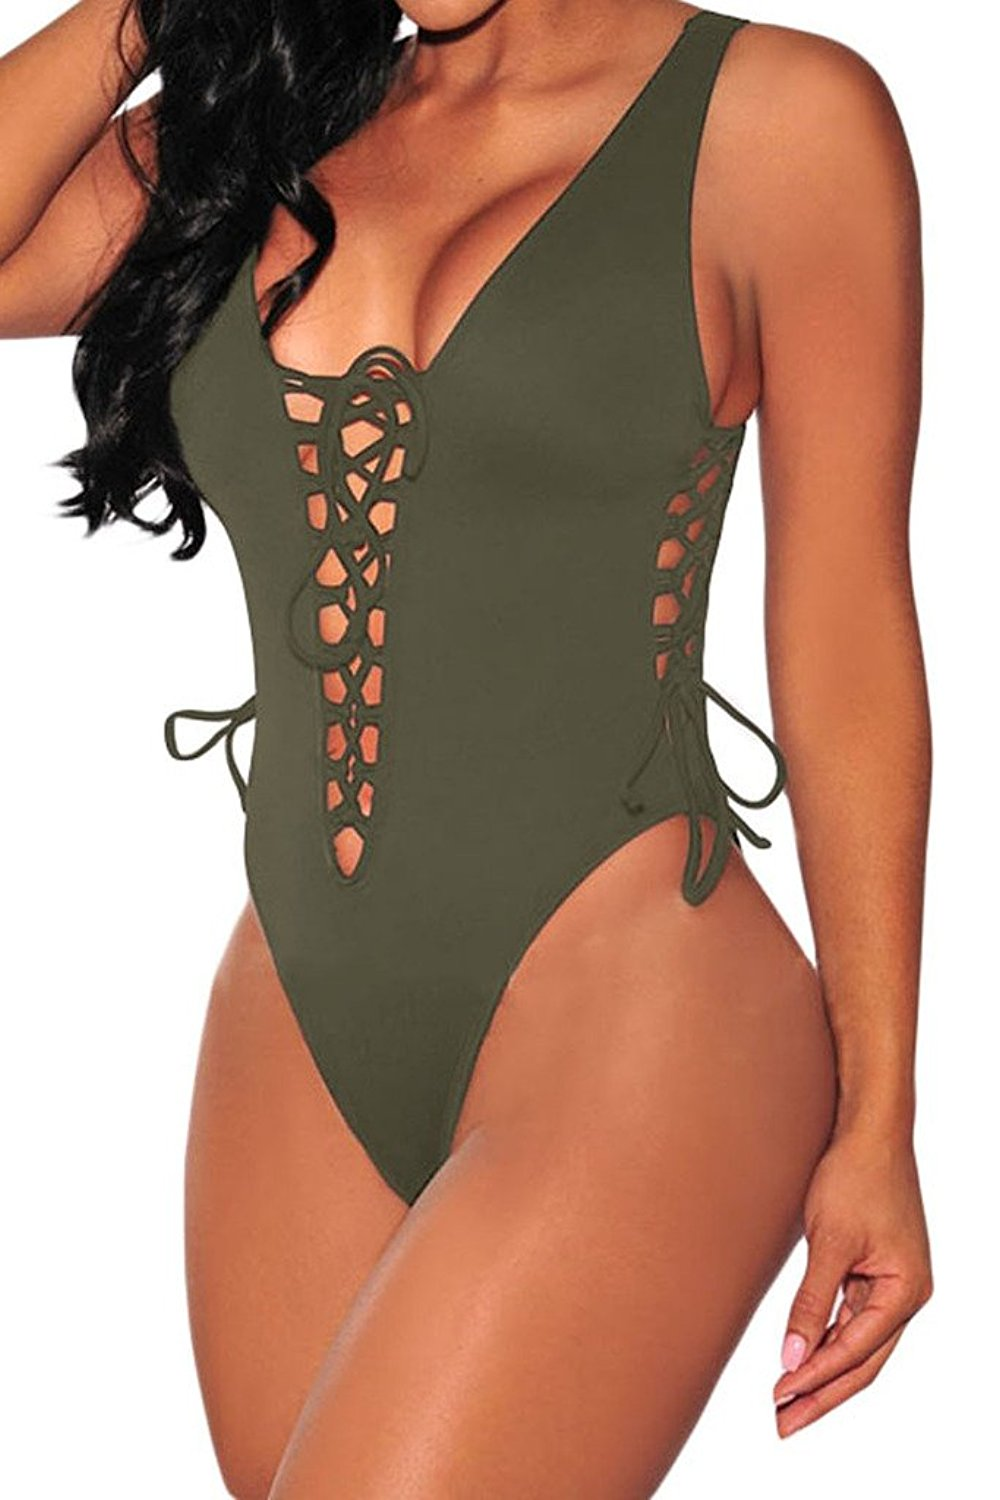 HOTAPEI Women V Neck Lace up High Cut One Piece Swimsuit